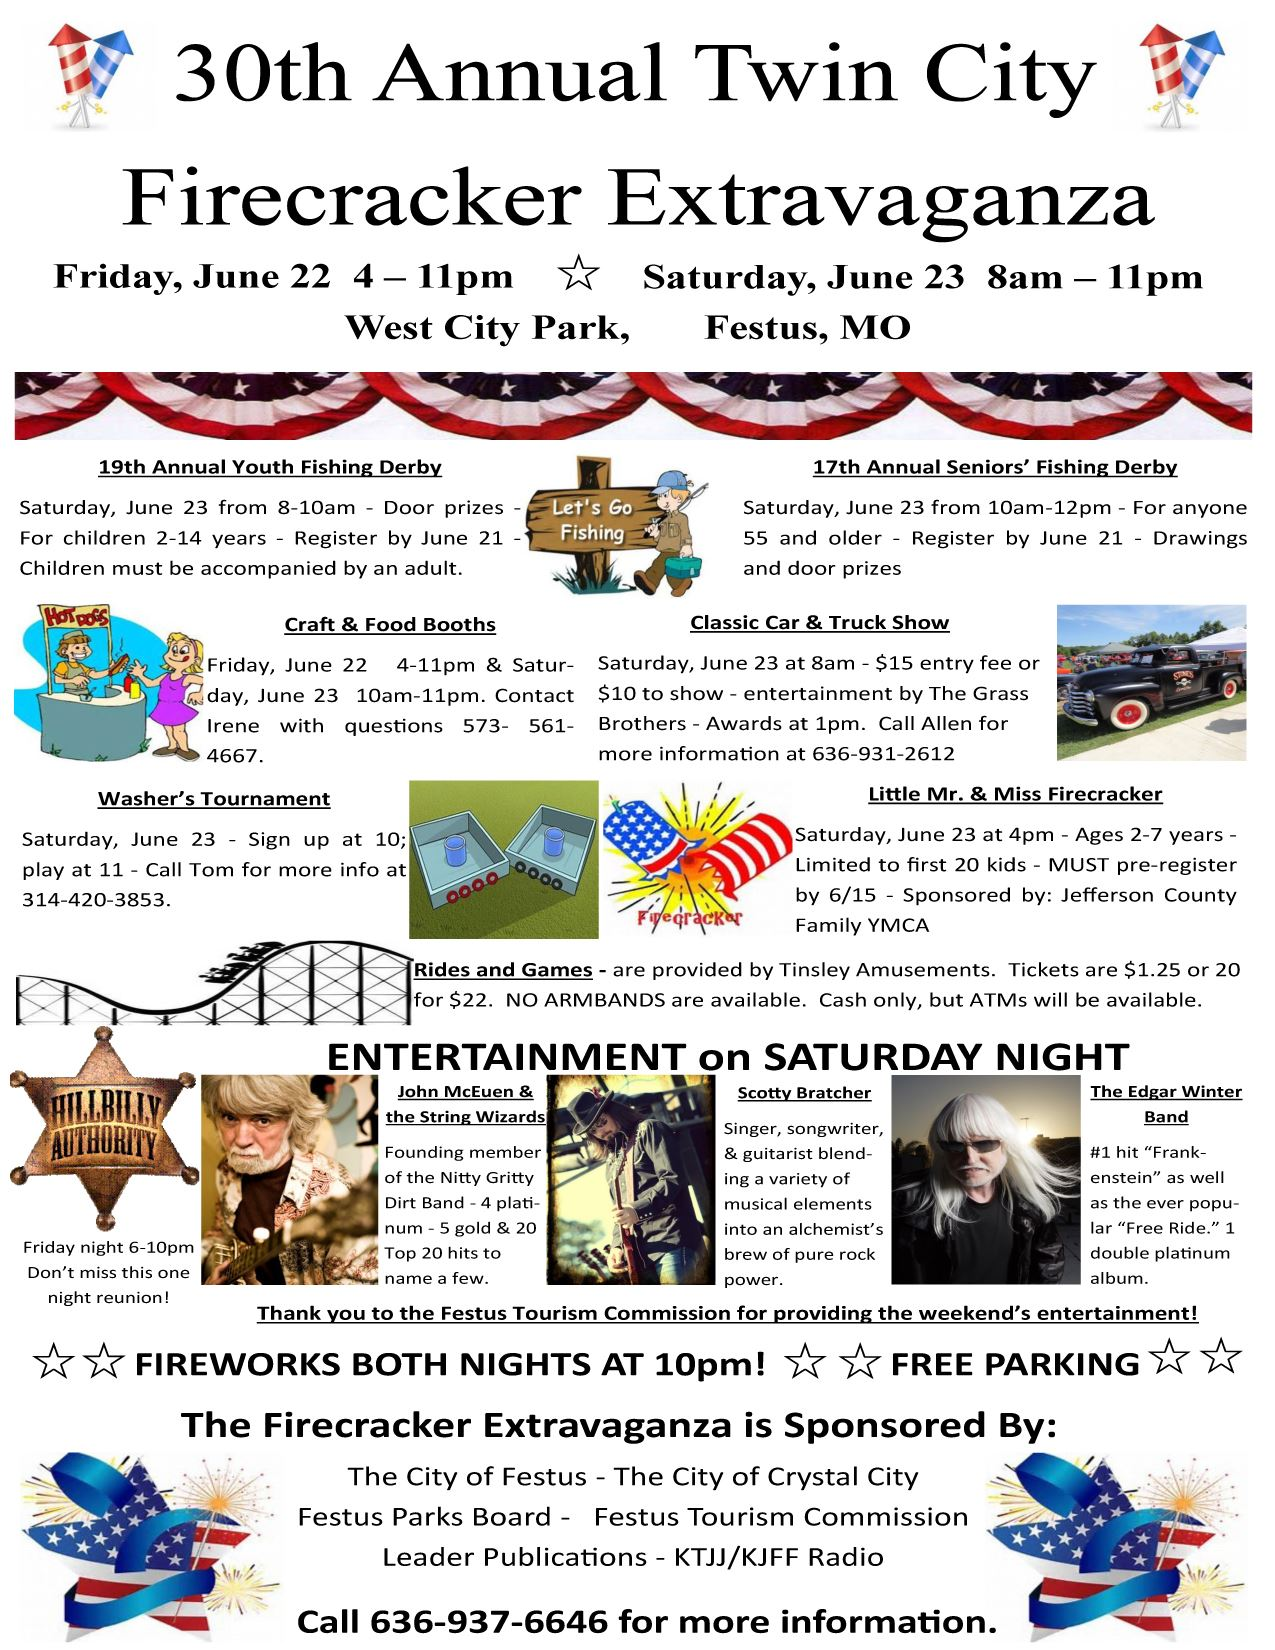 Image of the 2018 Firecracker Festival Brochure